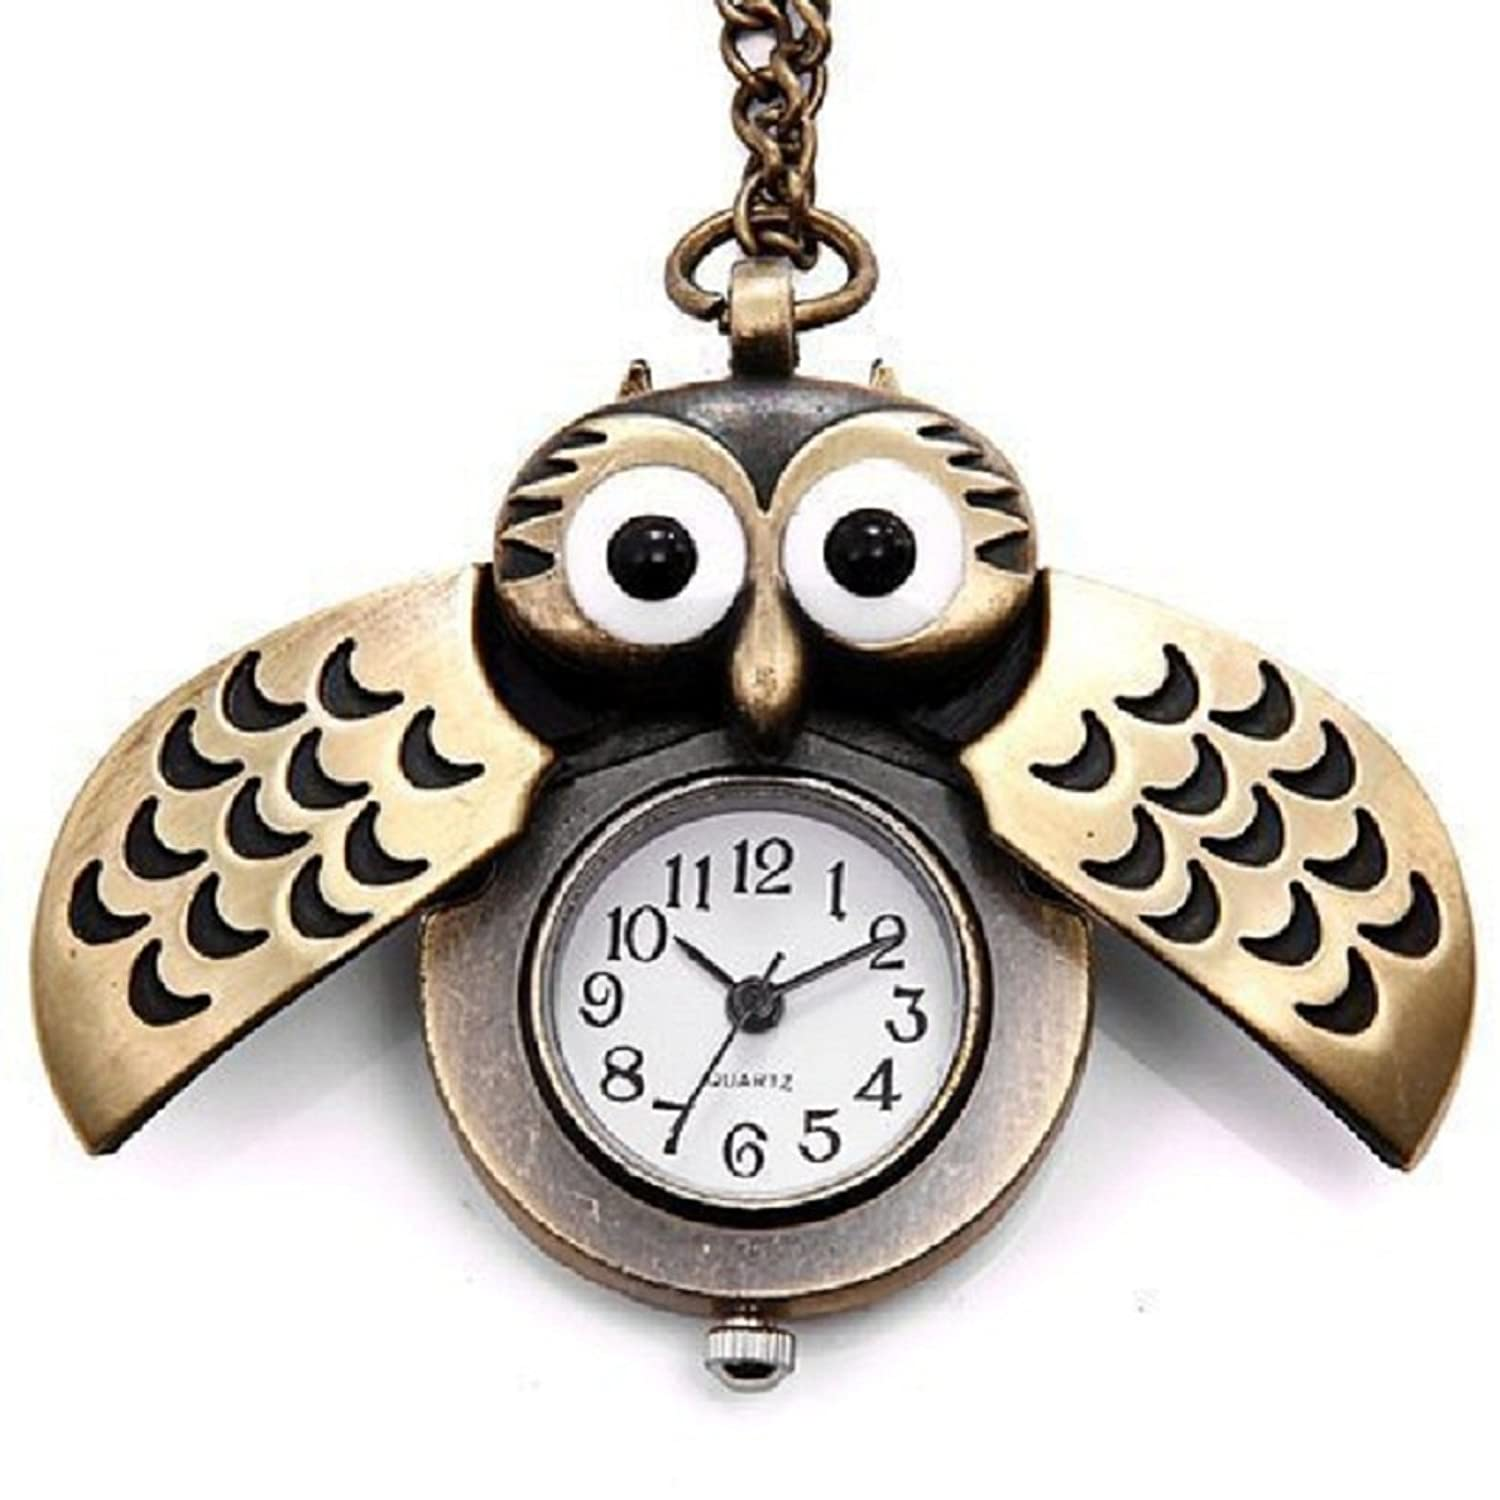 bronze quartz free clock pocket watch necklace pendant chinese dragon shipping product